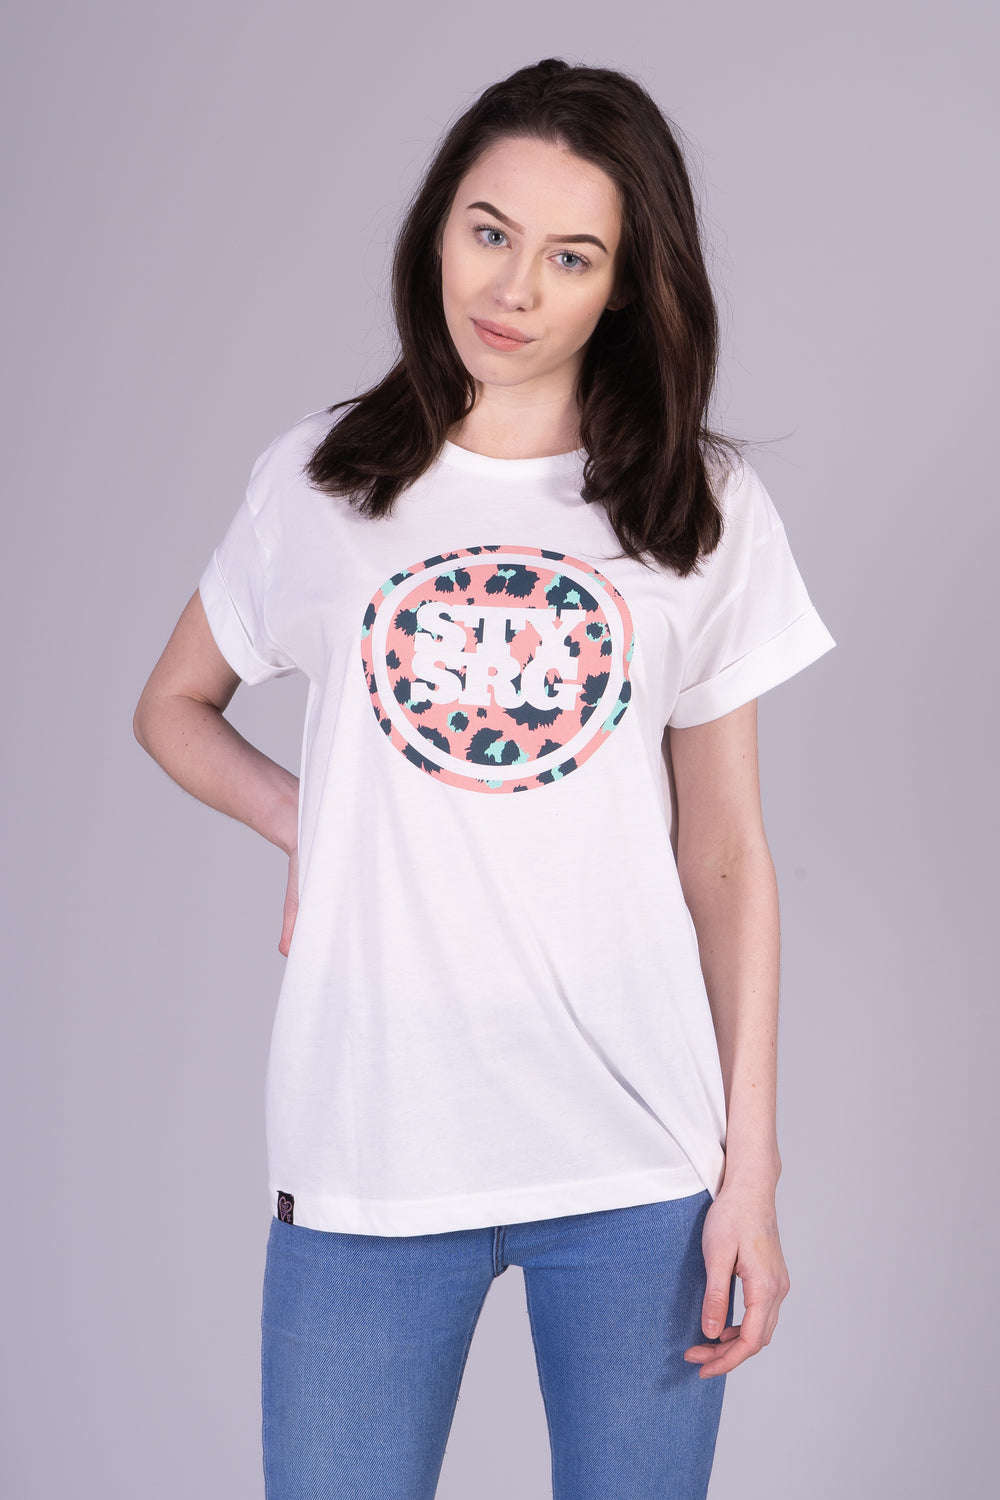 LEOPARD ICON WOMANS / TEE / WHITE